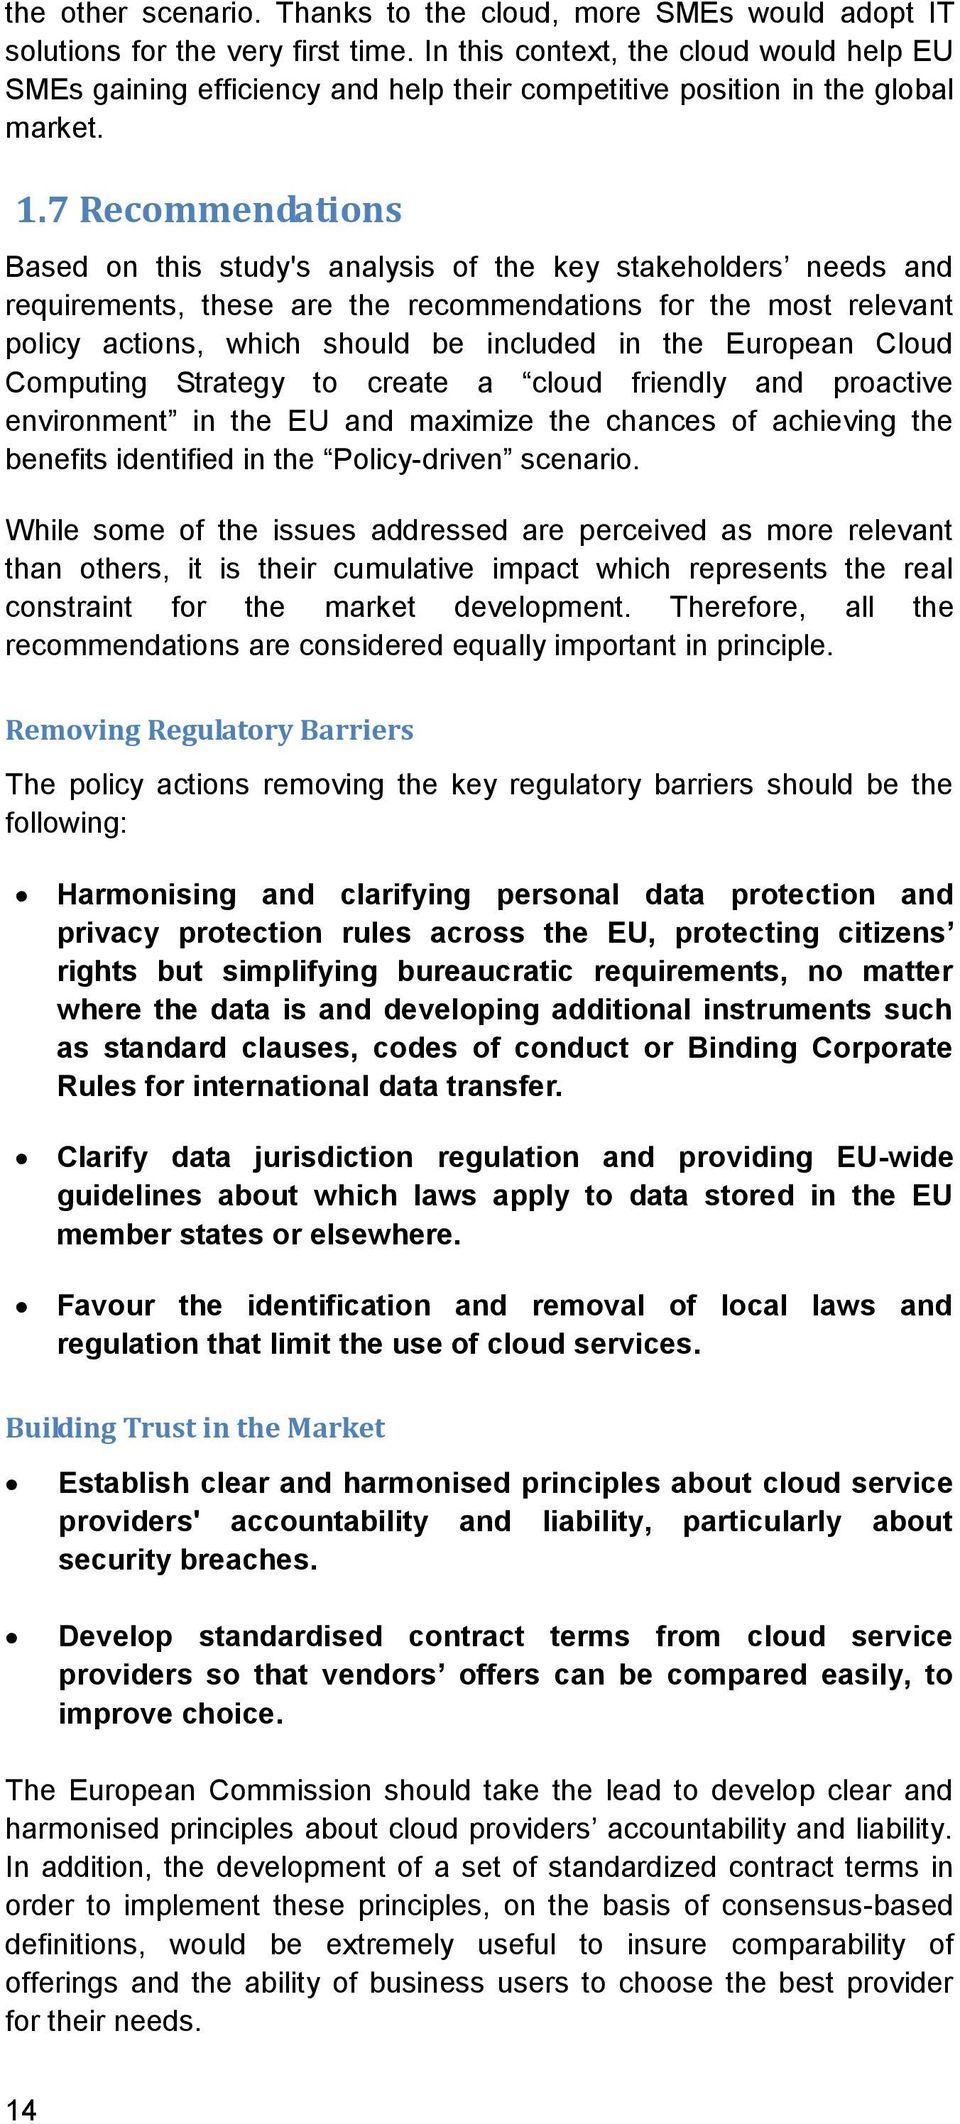 7 Recommendations Based on this study's analysis of the key stakeholders needs and requirements, these are the recommendations for the most relevant policy actions, which should be included in the